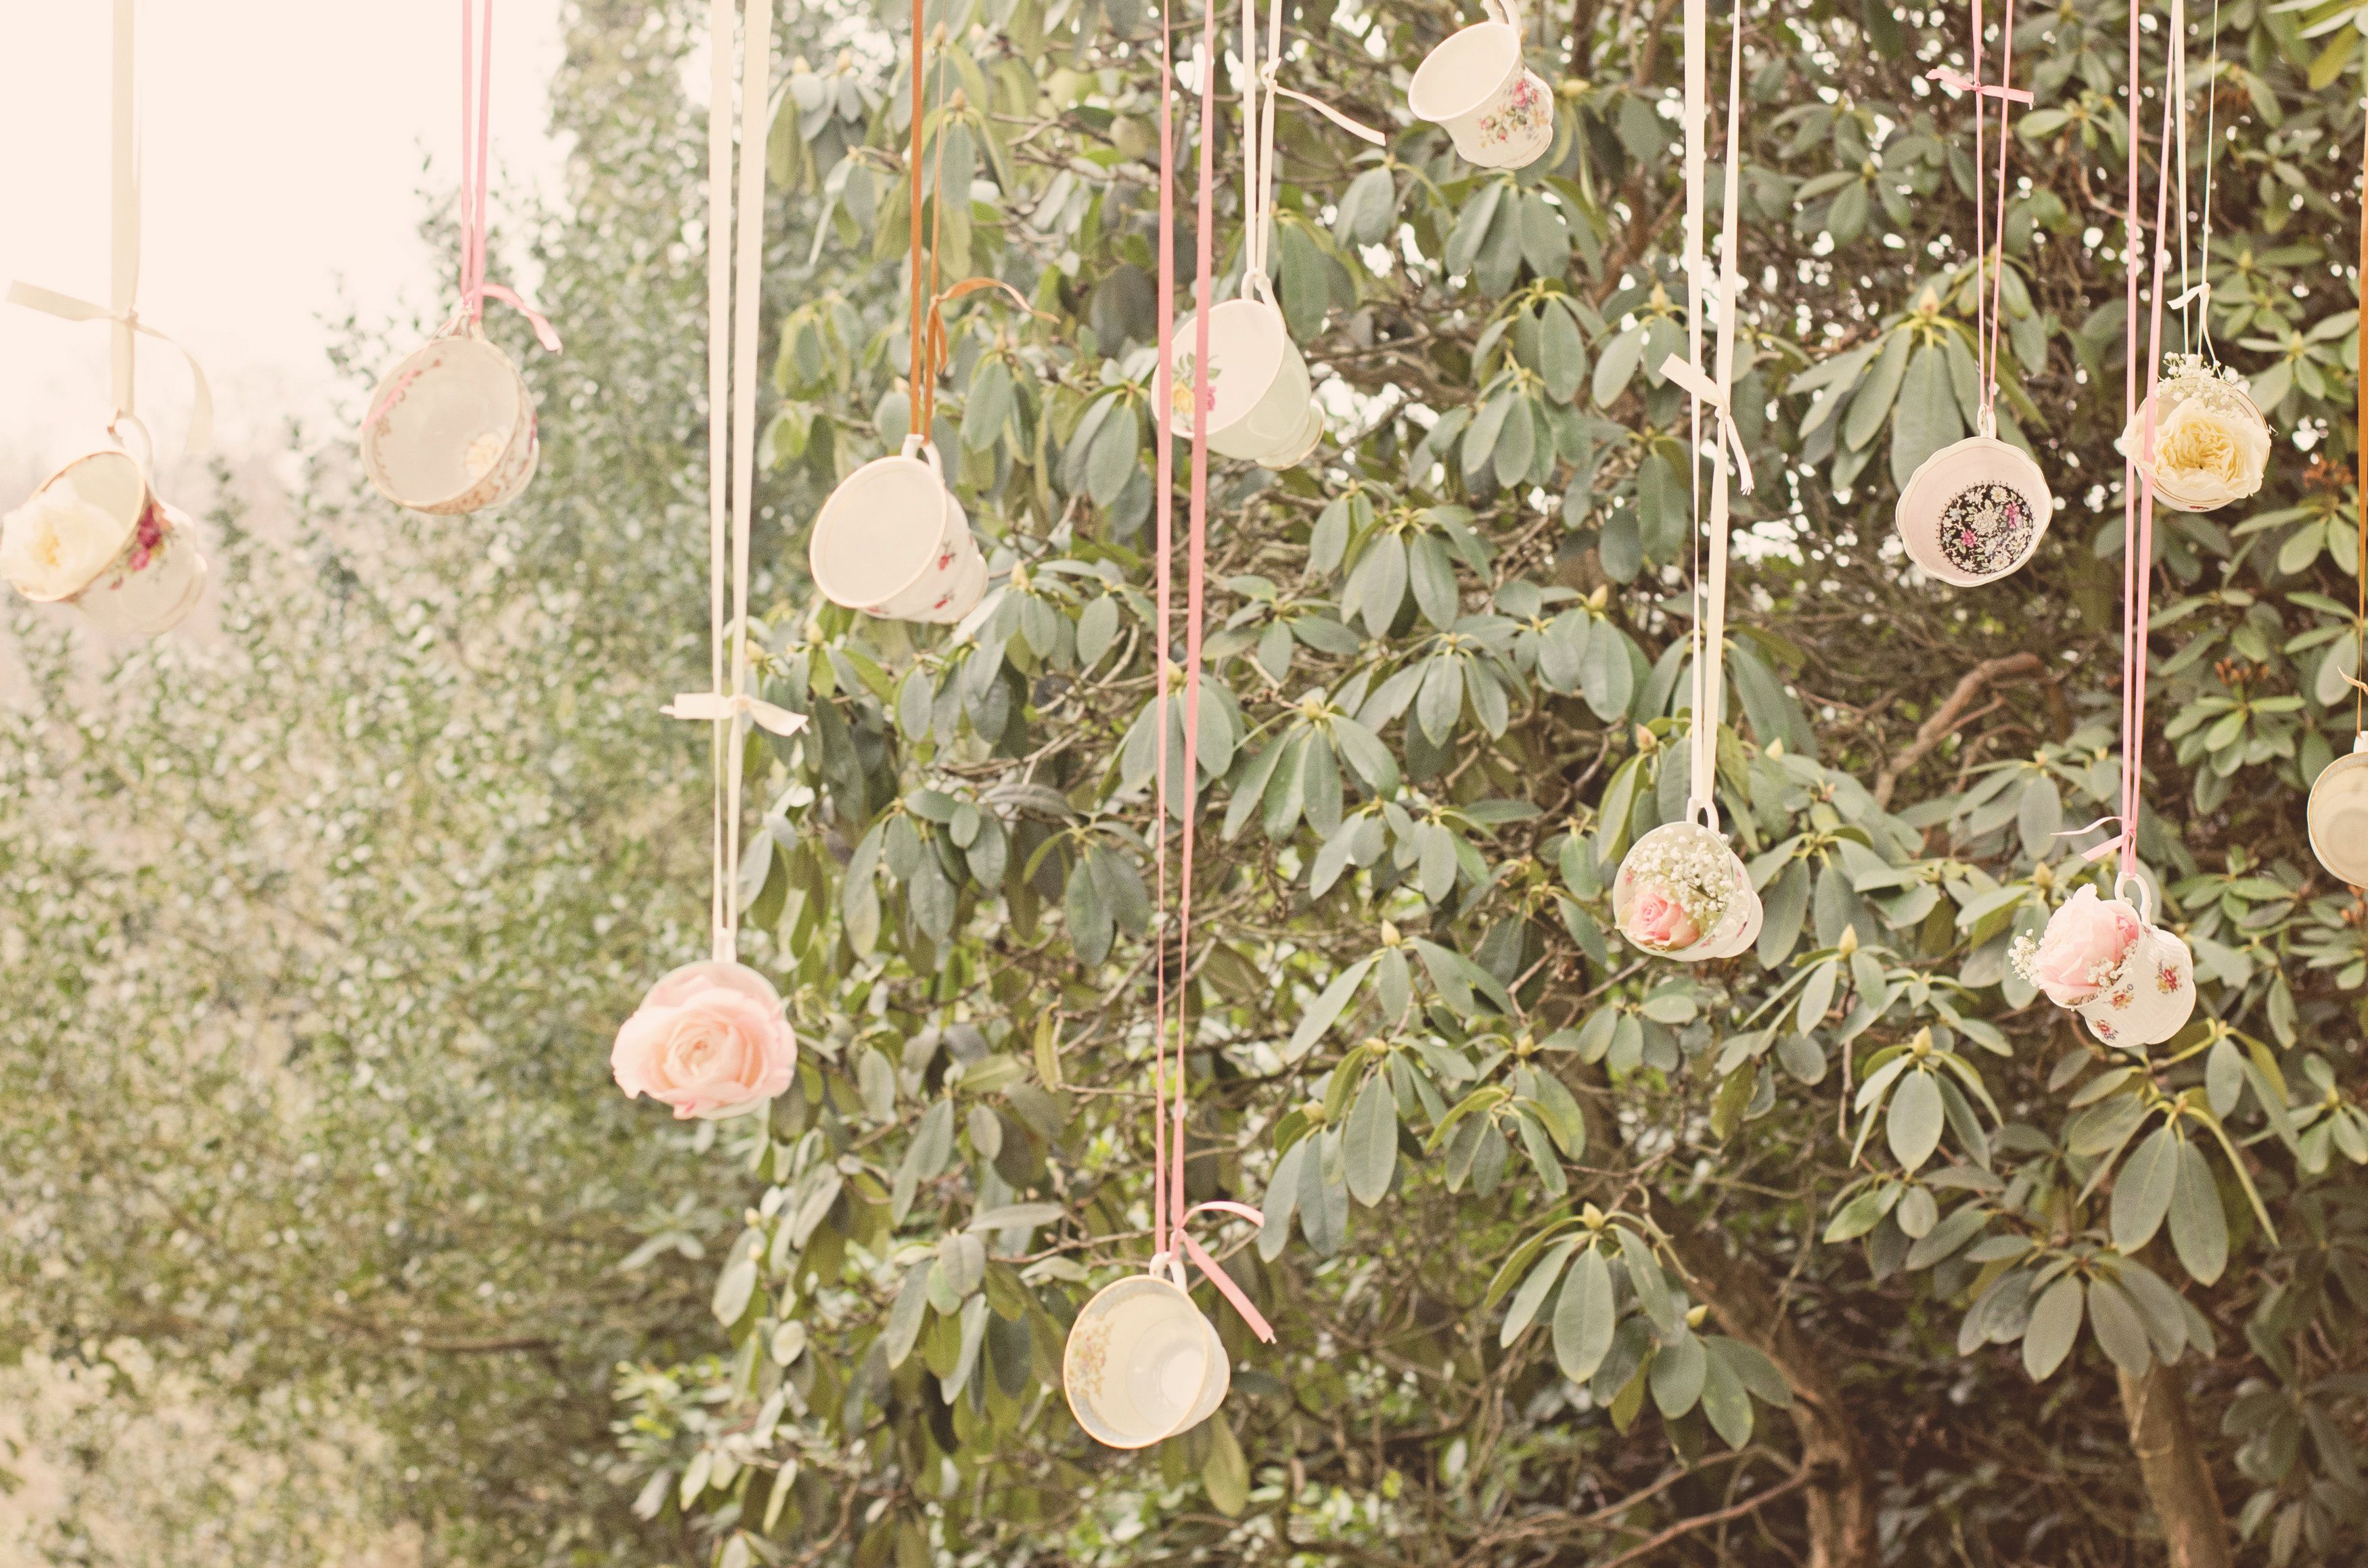 Example hanging flowers from ribbons